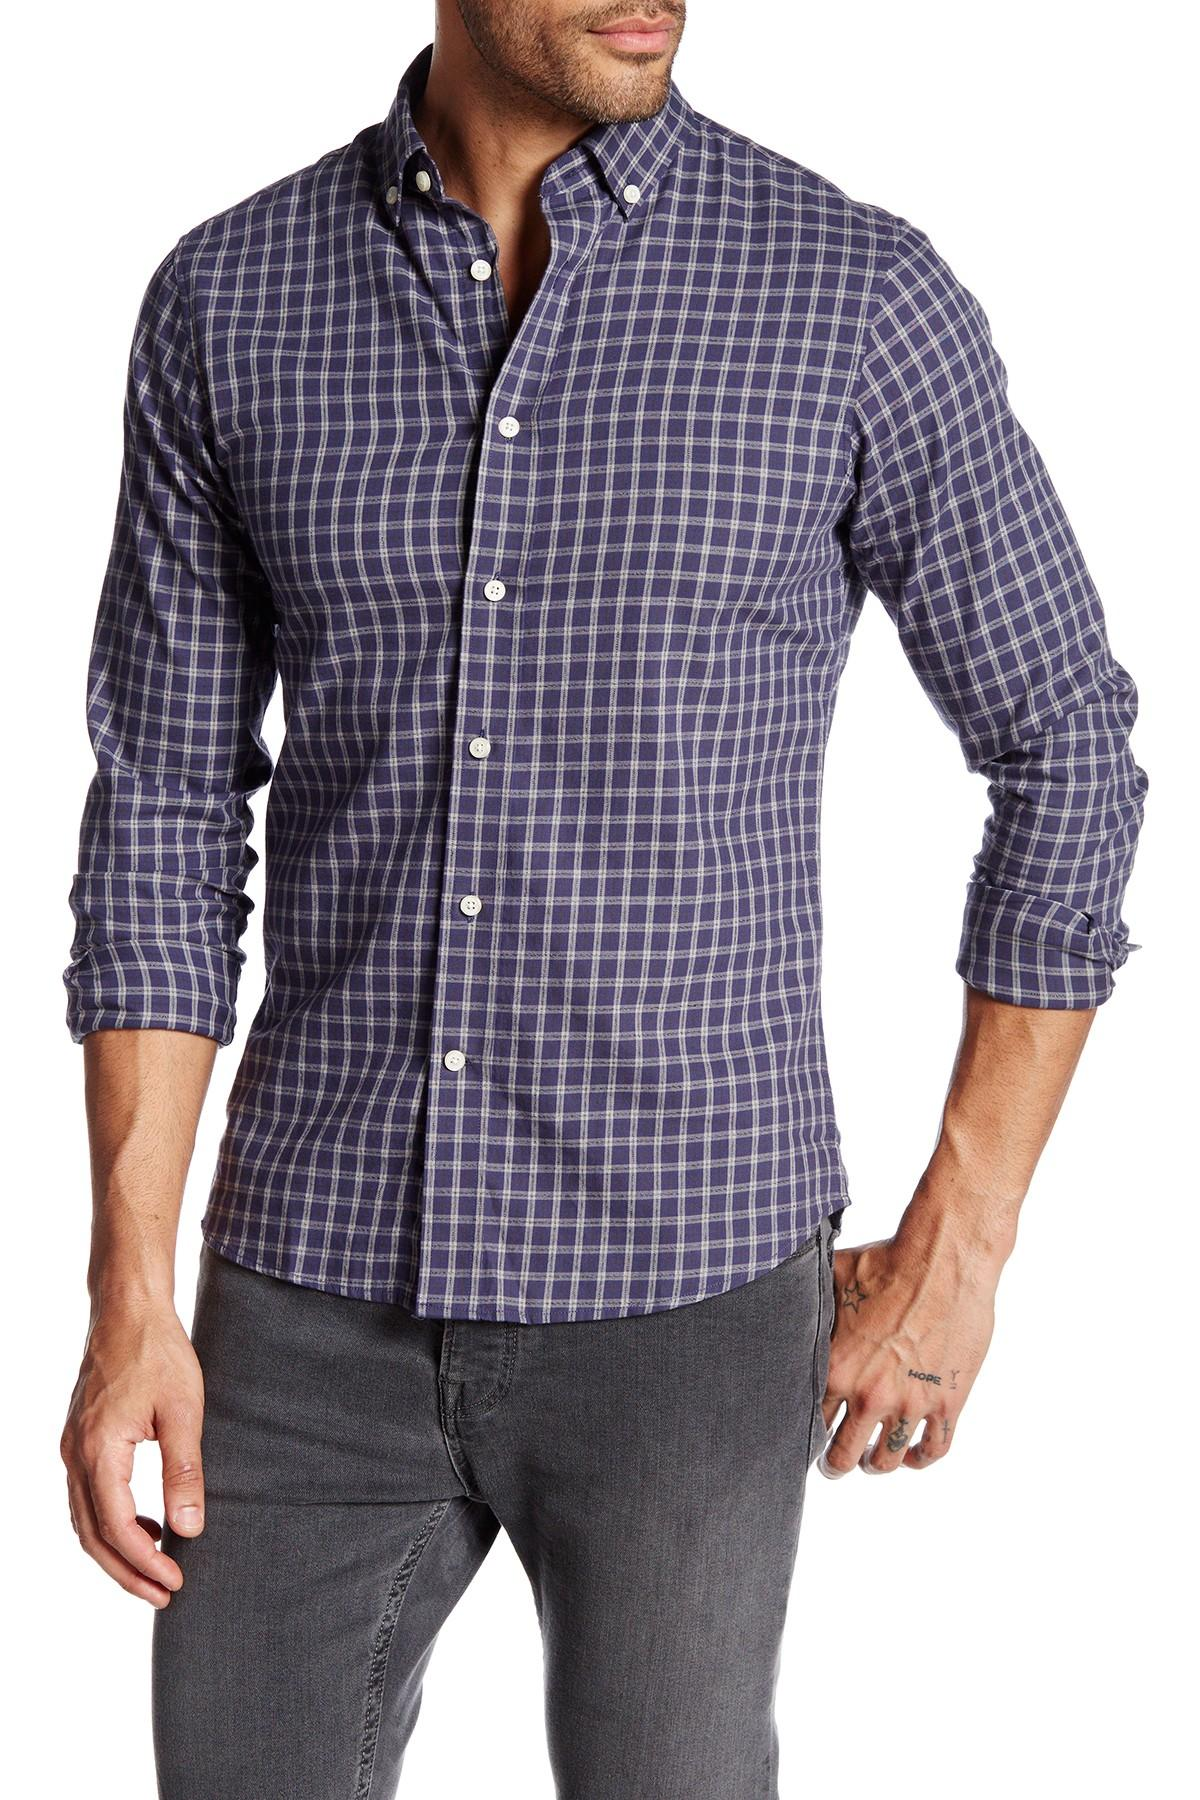 Slate And Stone Clothing : Lyst slate stone asher plaid shirt in blue for men